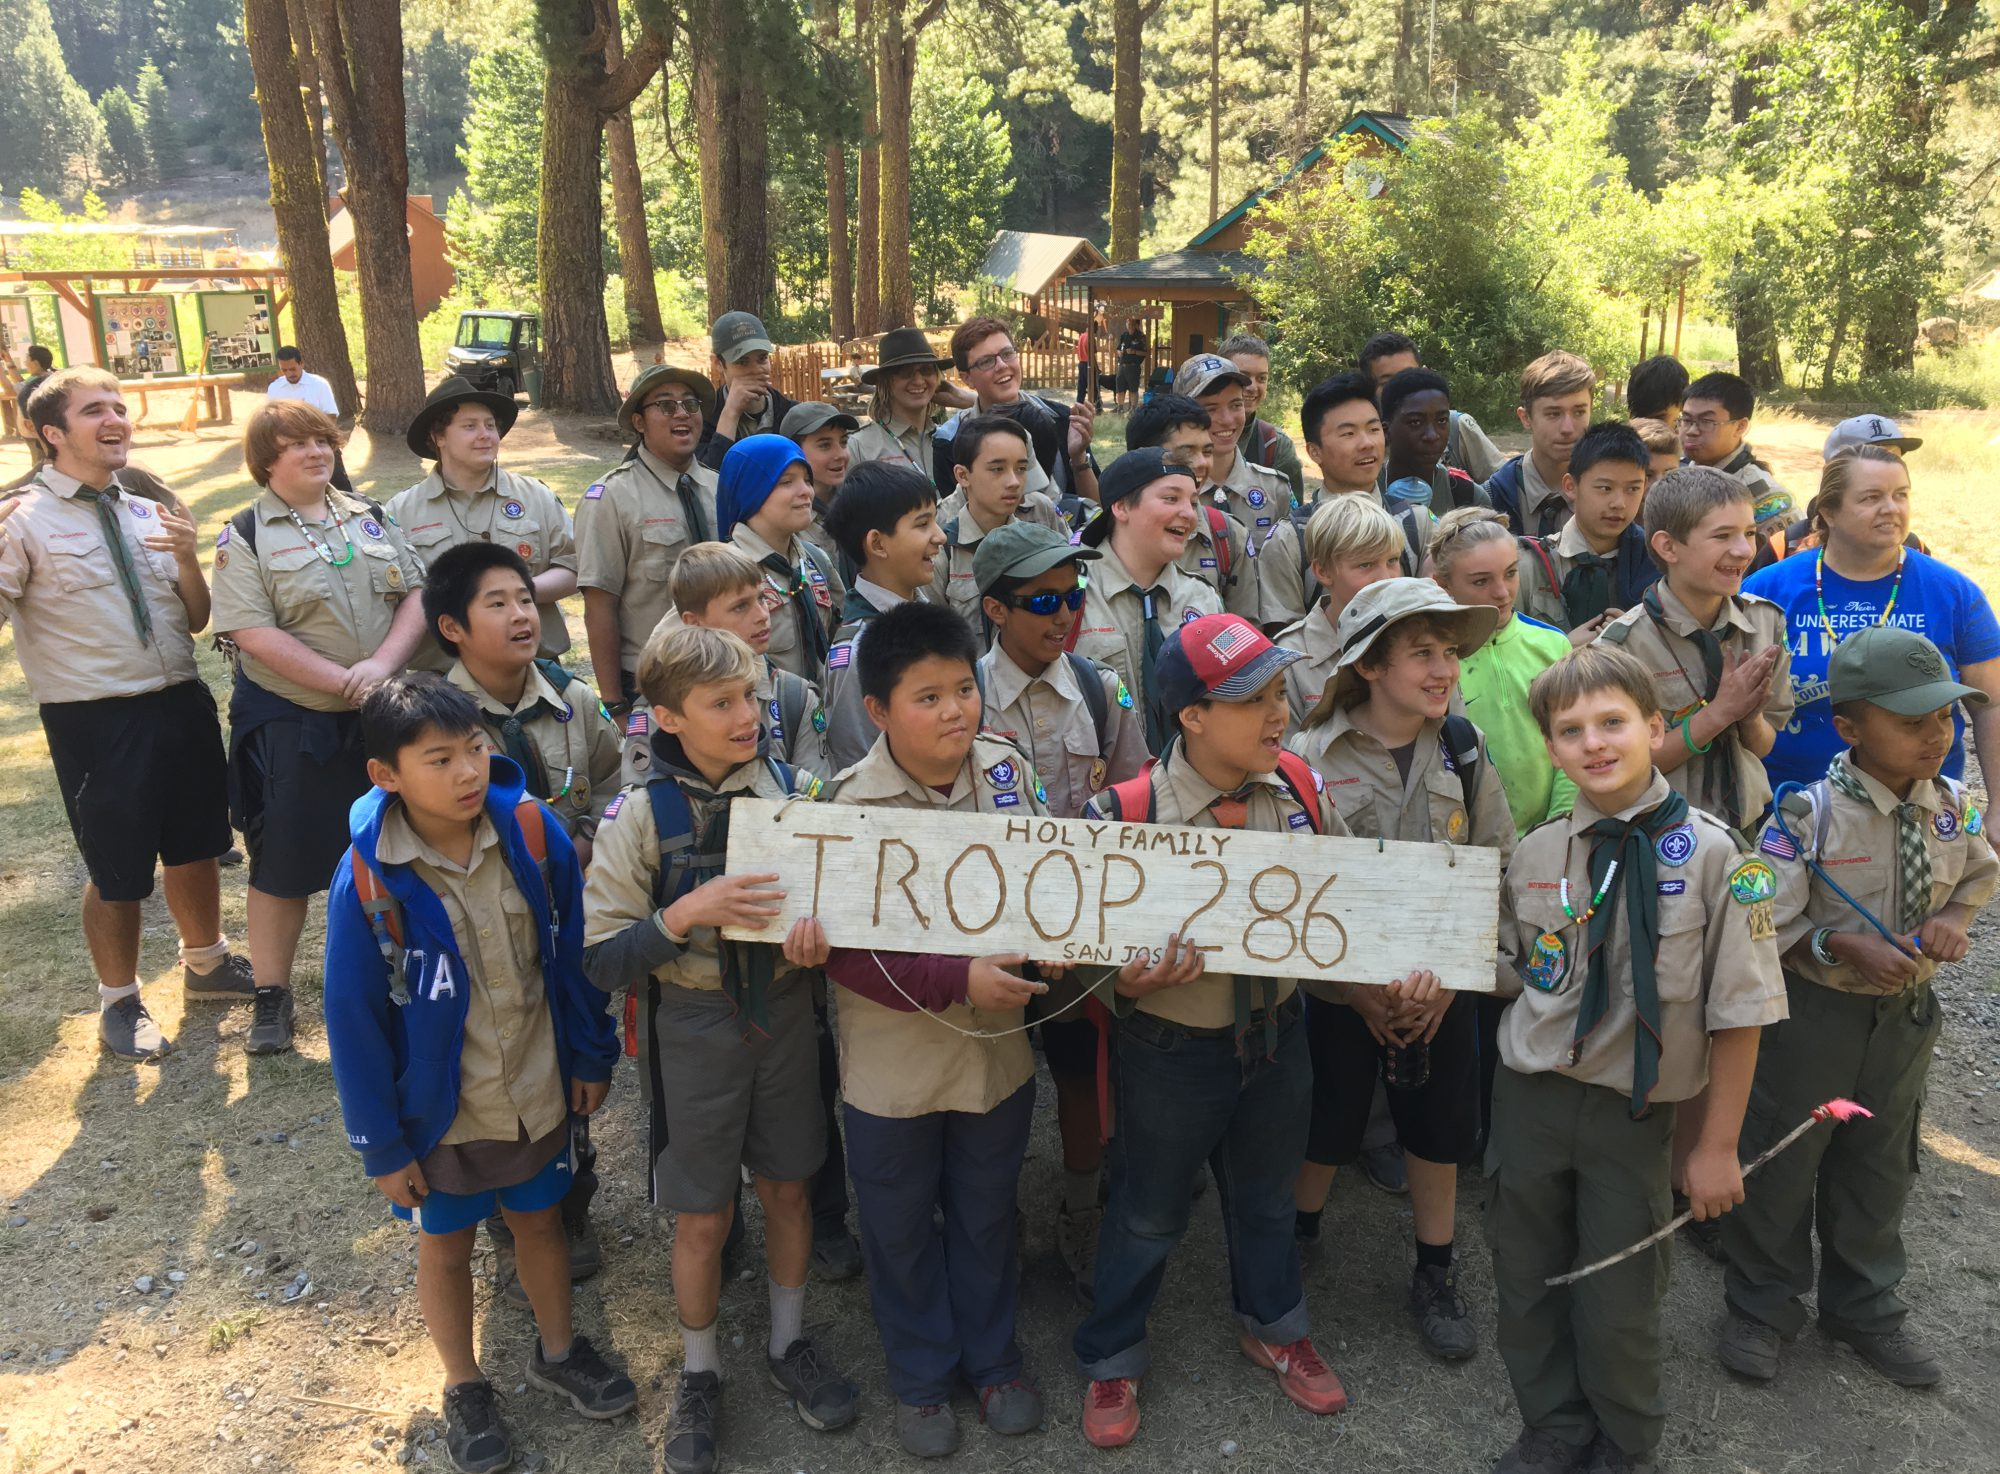 BSA Troop 286